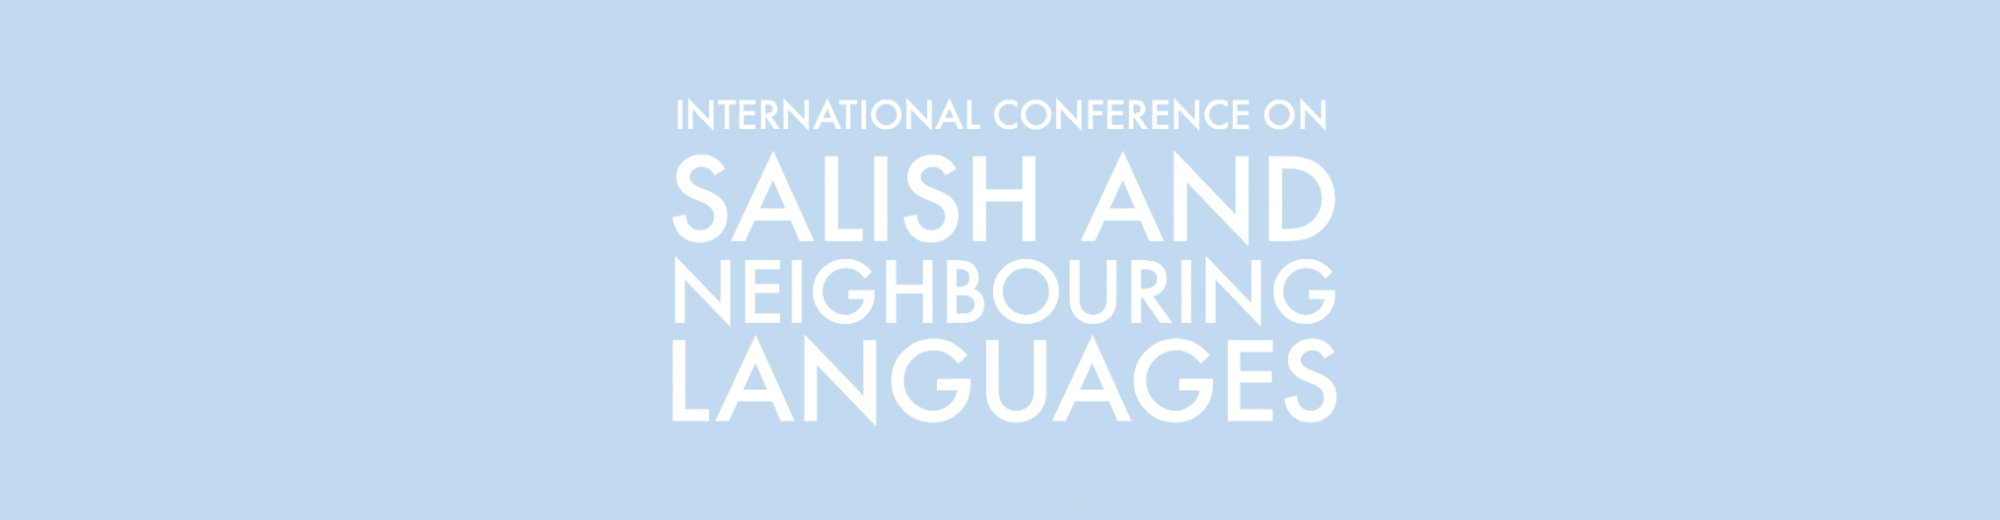 55th International Conference on Salish and Neighbouring Languages